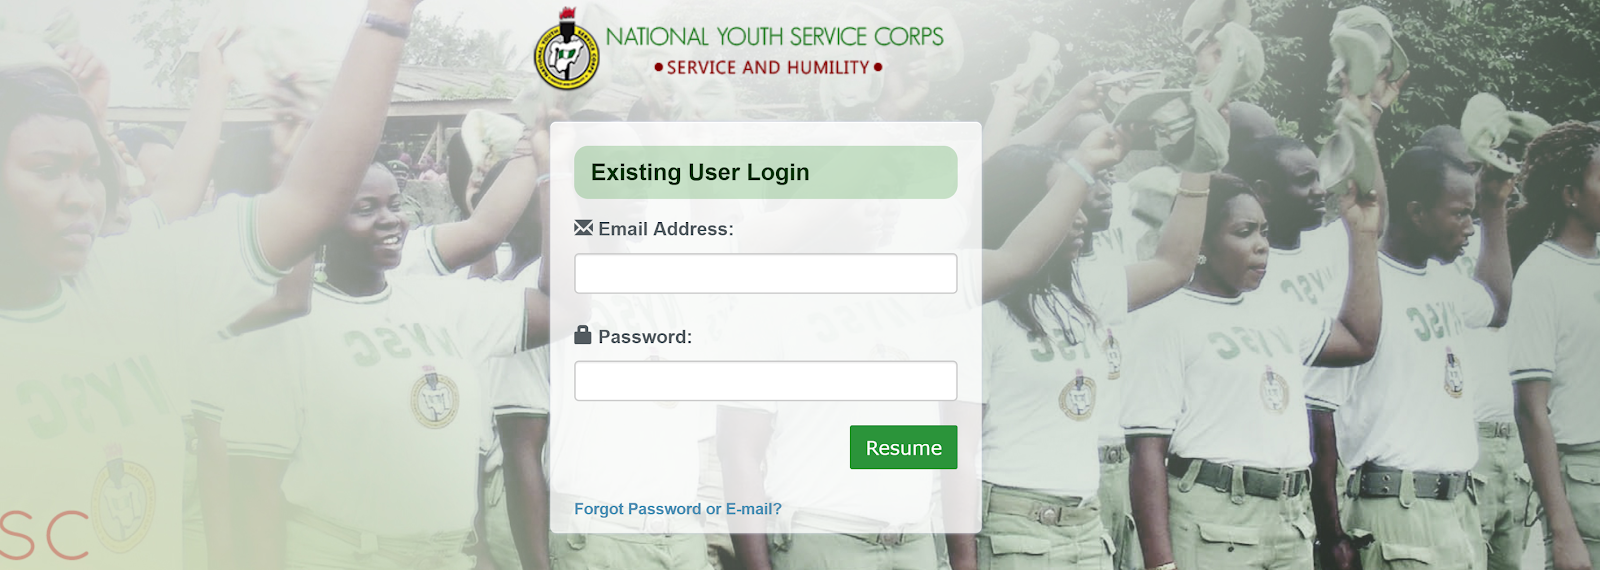 NYSC Portal Login and Registration Guide